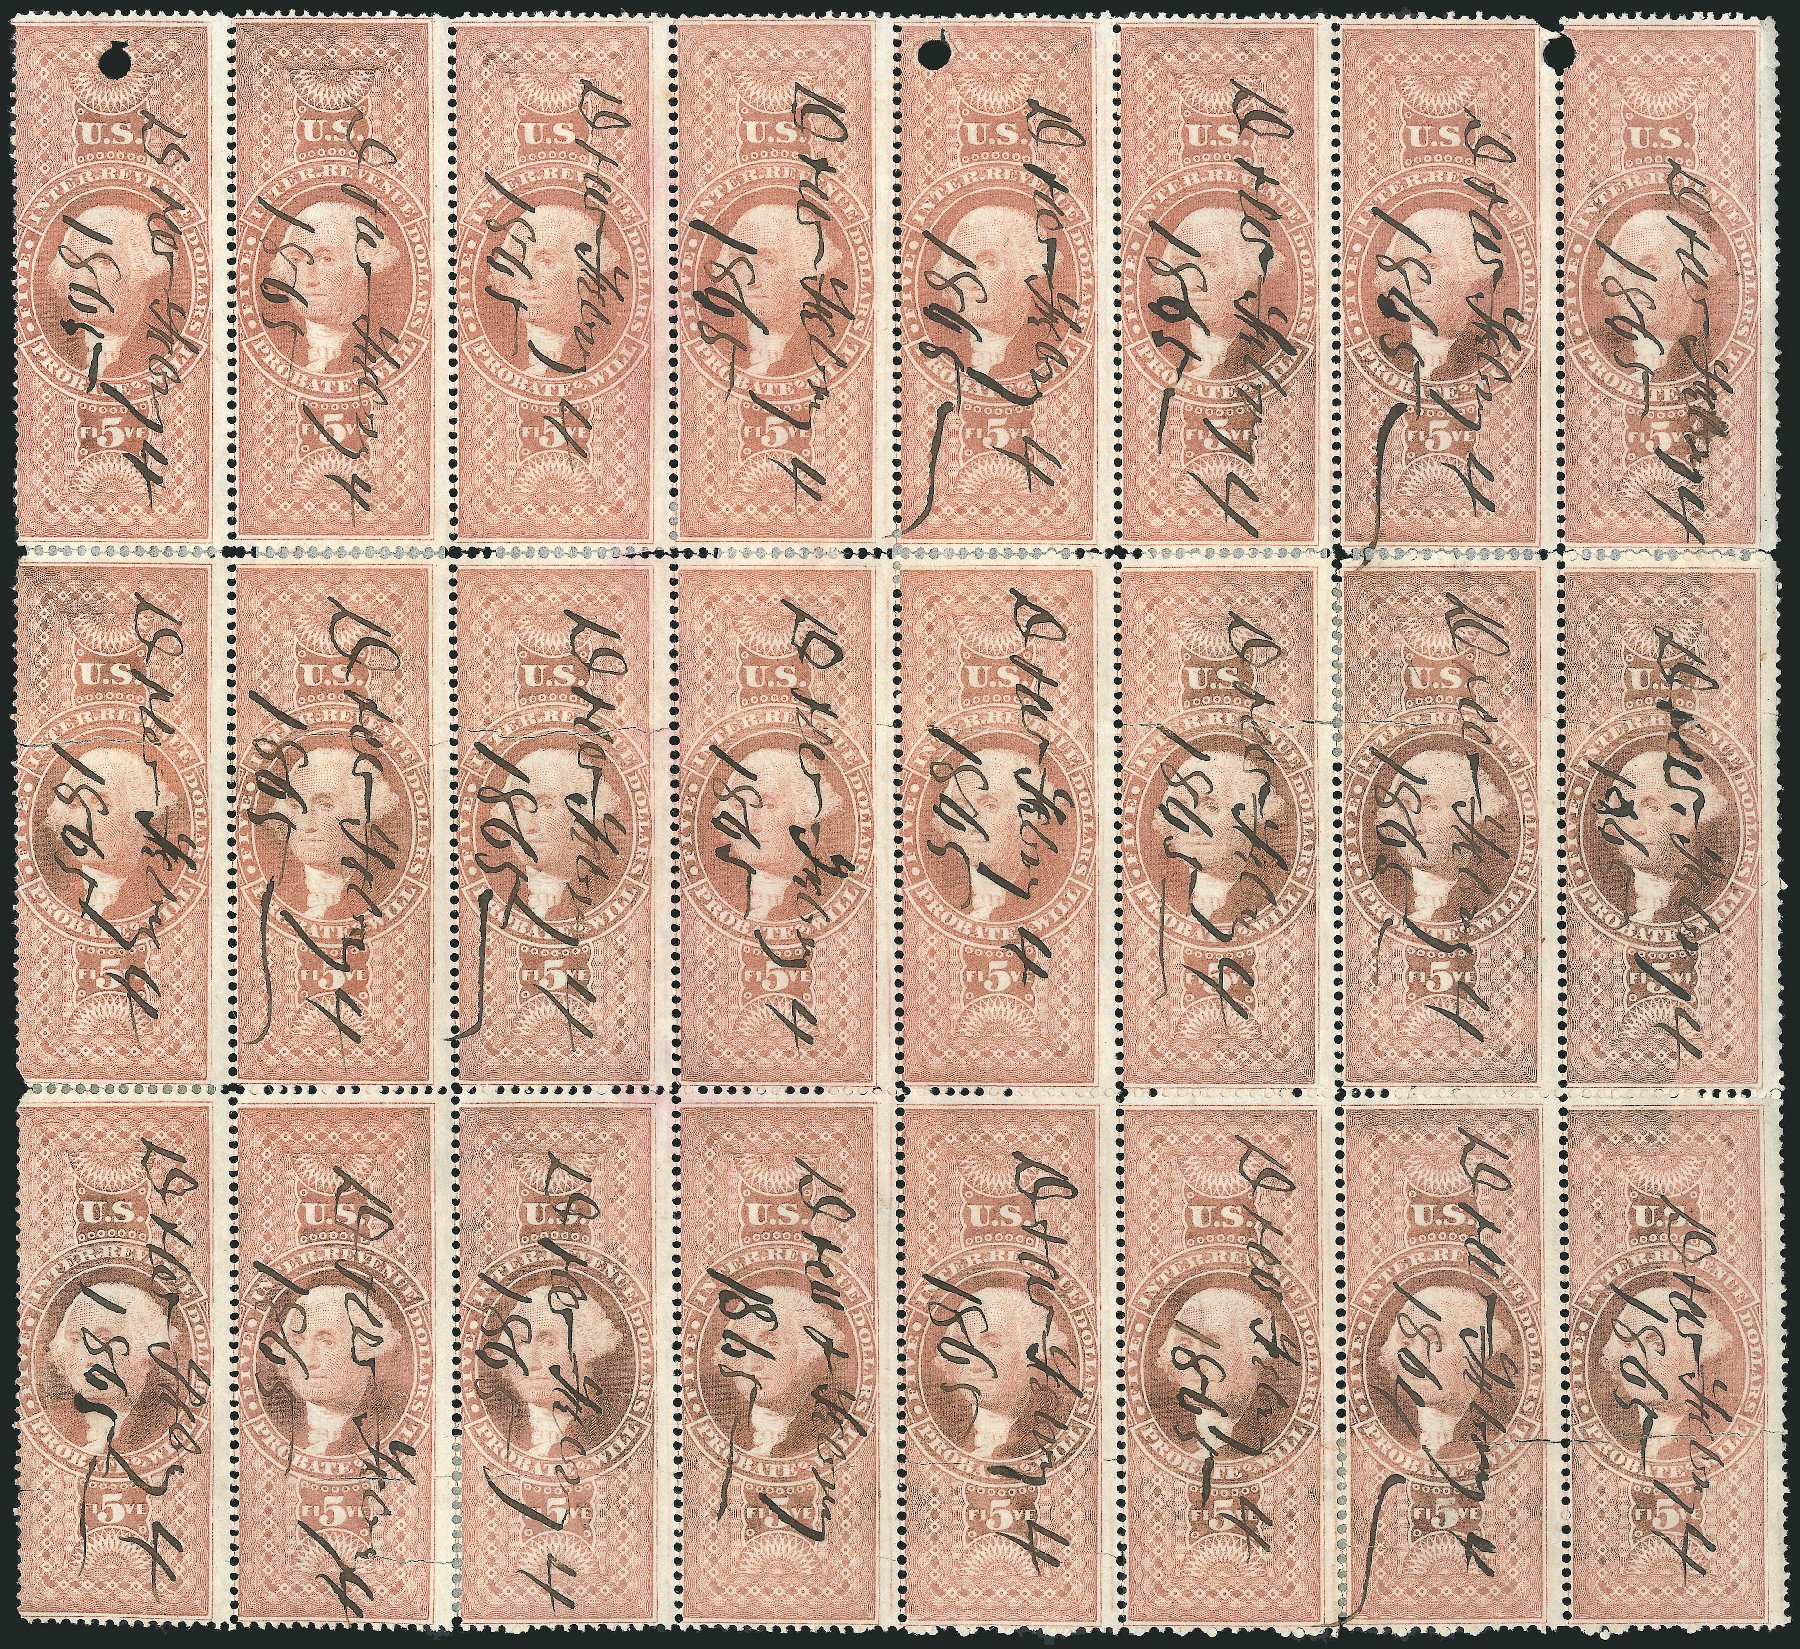 US Stamp Price Scott Catalogue R92 - 1862 US$5.00 Revenue Probate of Will. Robert Siegel Auction Galleries, Dec 2014, Sale 1089, Lot 439